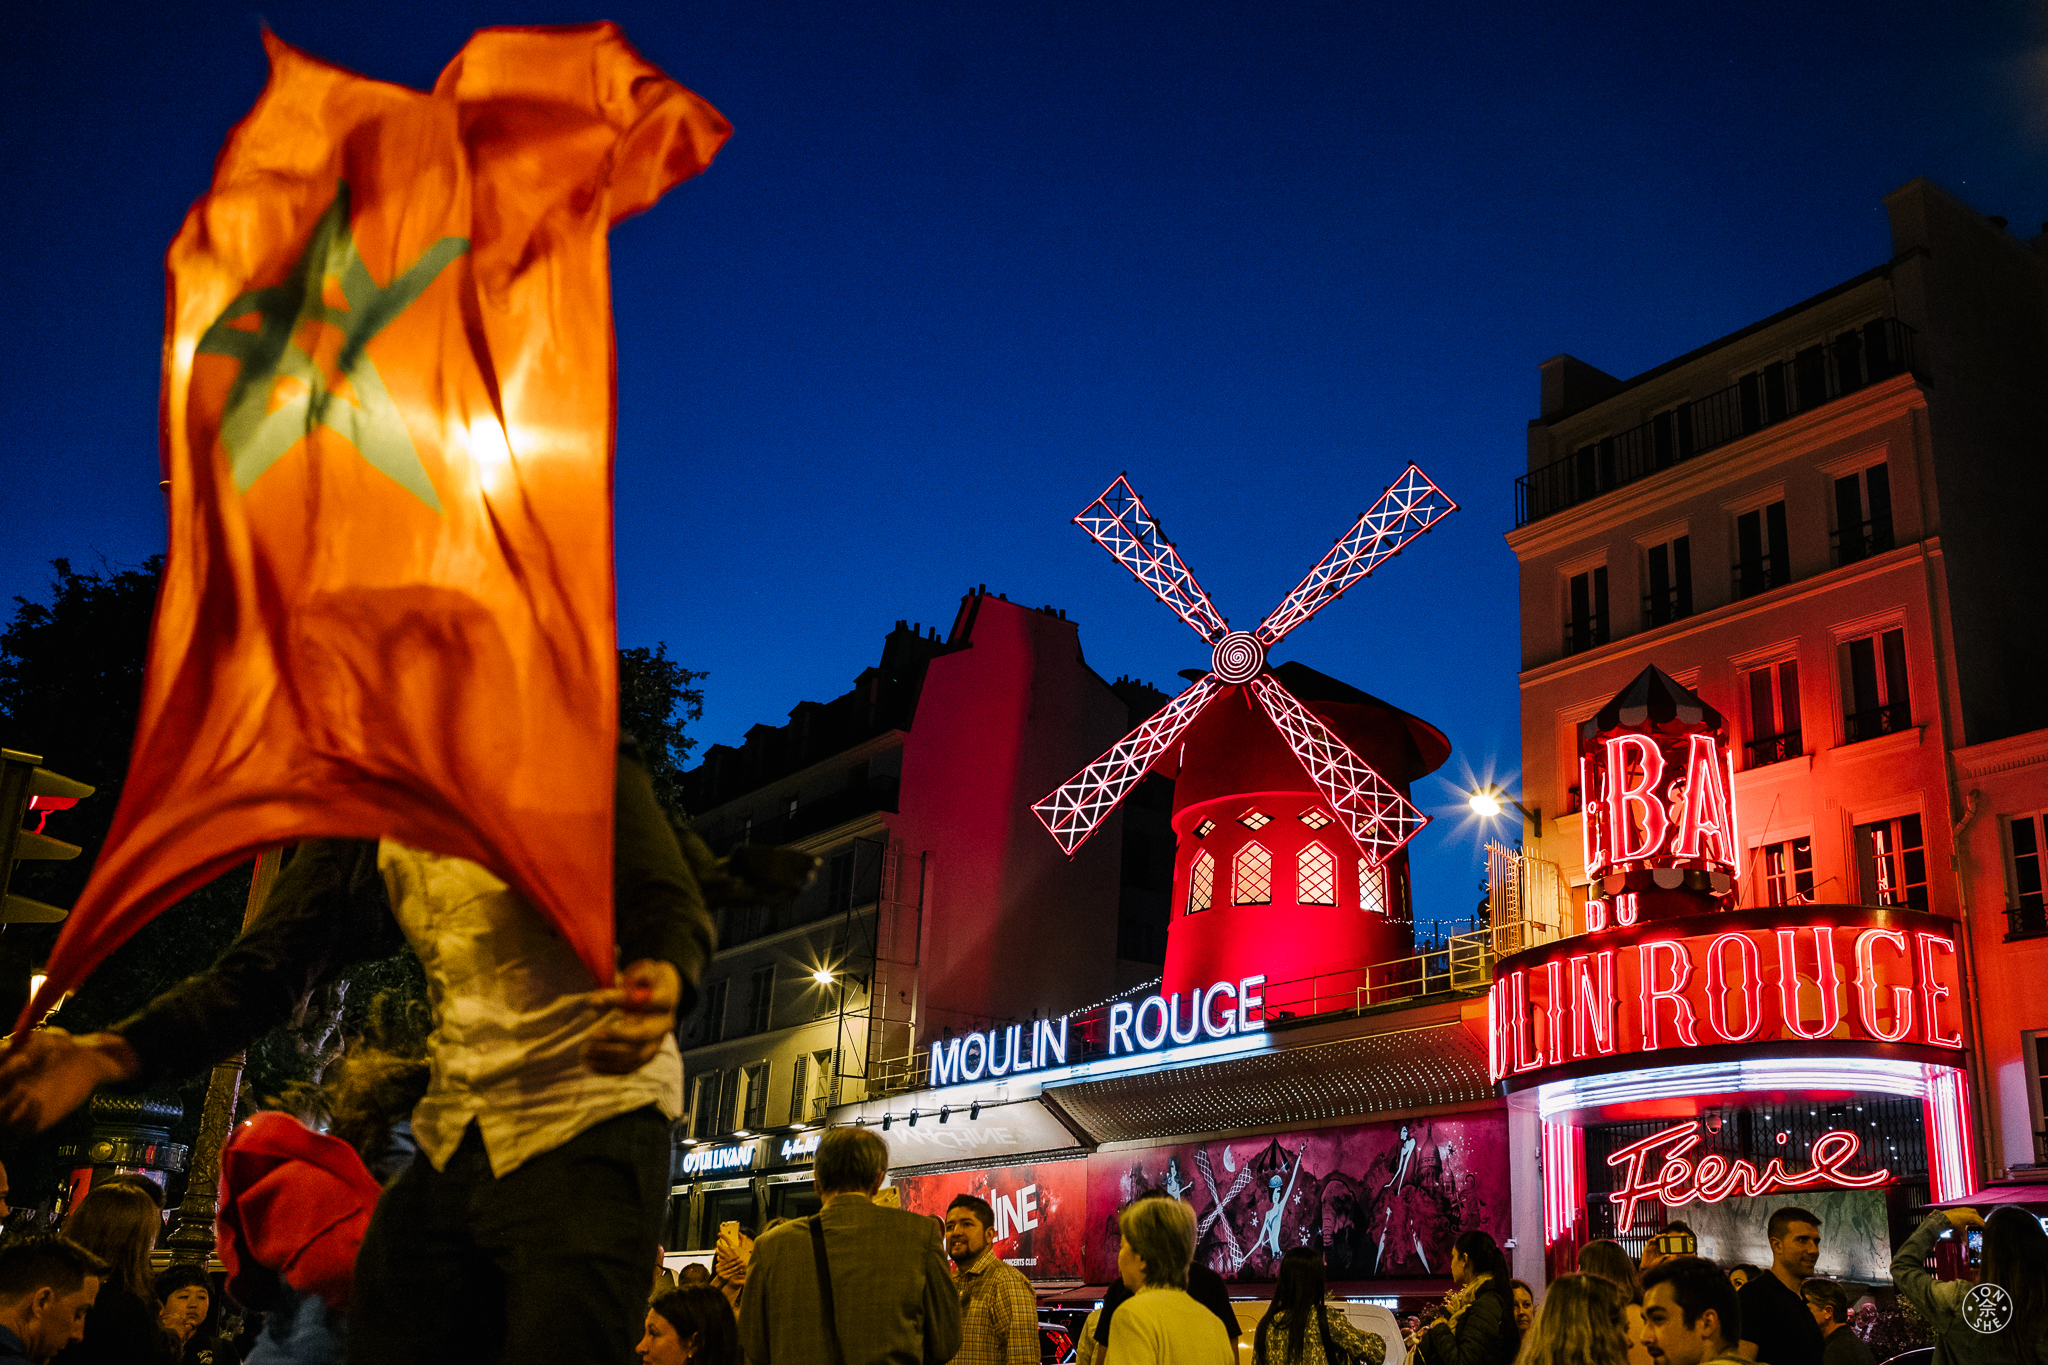 World Cup at the Moulin Rouge